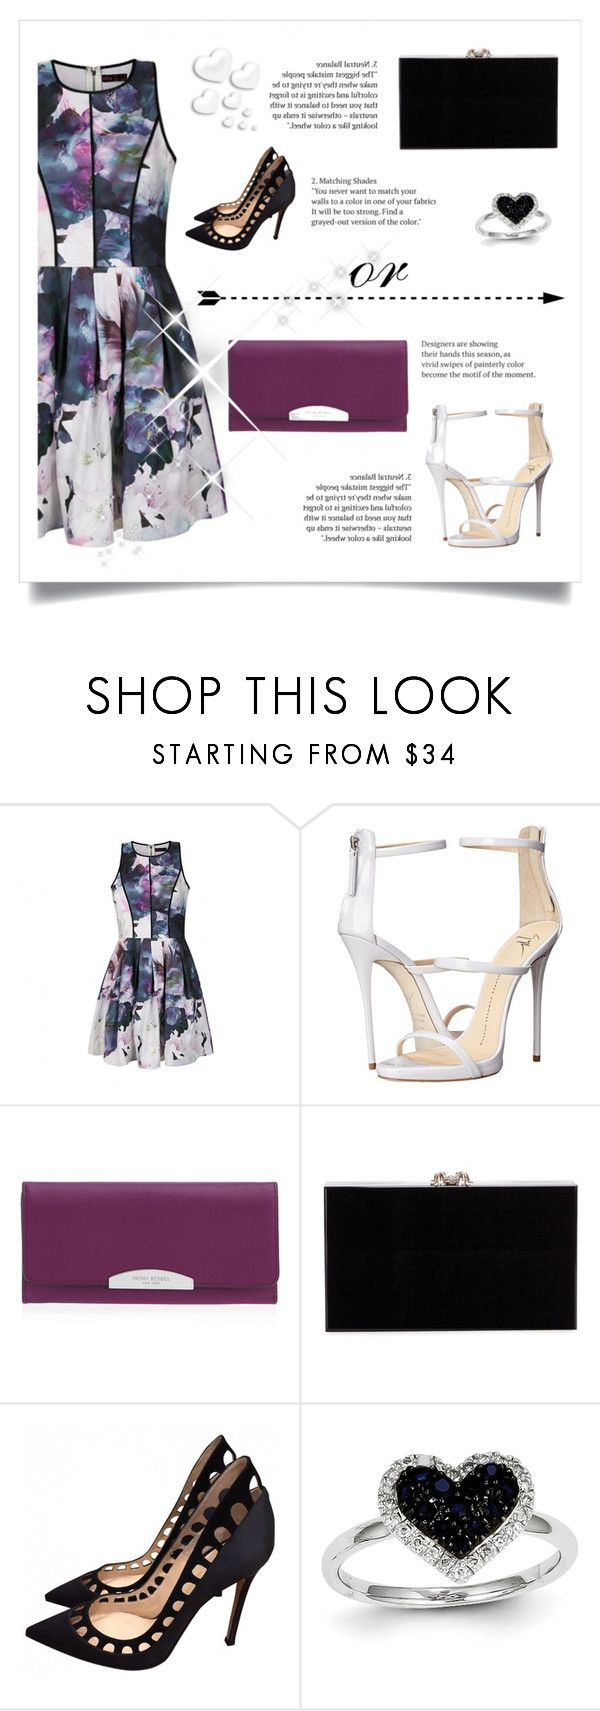 """LOOK AT THE SUN! FINALLY!"" by paradiselemonade ❤ liked on Polyvore featuring moda, Ally Fashion, Giuseppe Zanotti, Henri Bendel, Charlotte Olympia, Gianvito Rossi, Kevin Jewelers i Valentino"